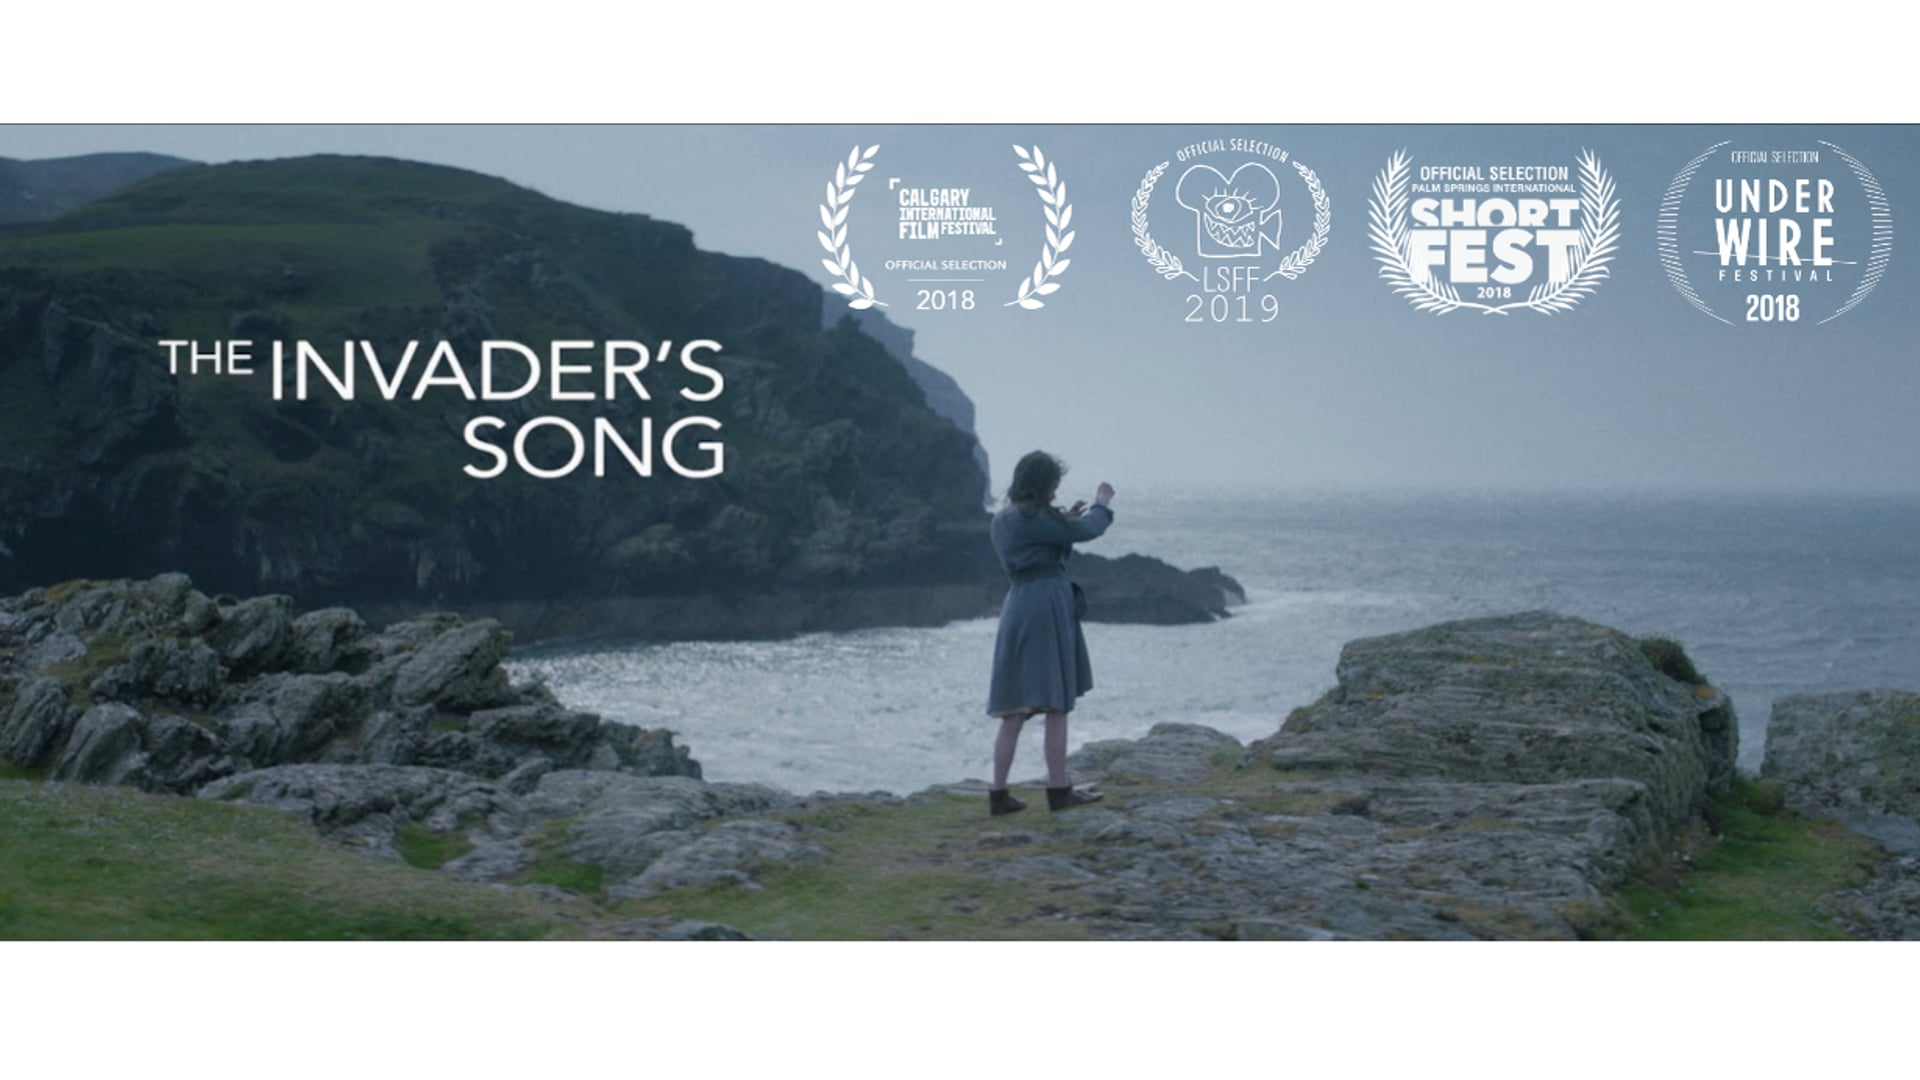 The Invader's Song - Trailer